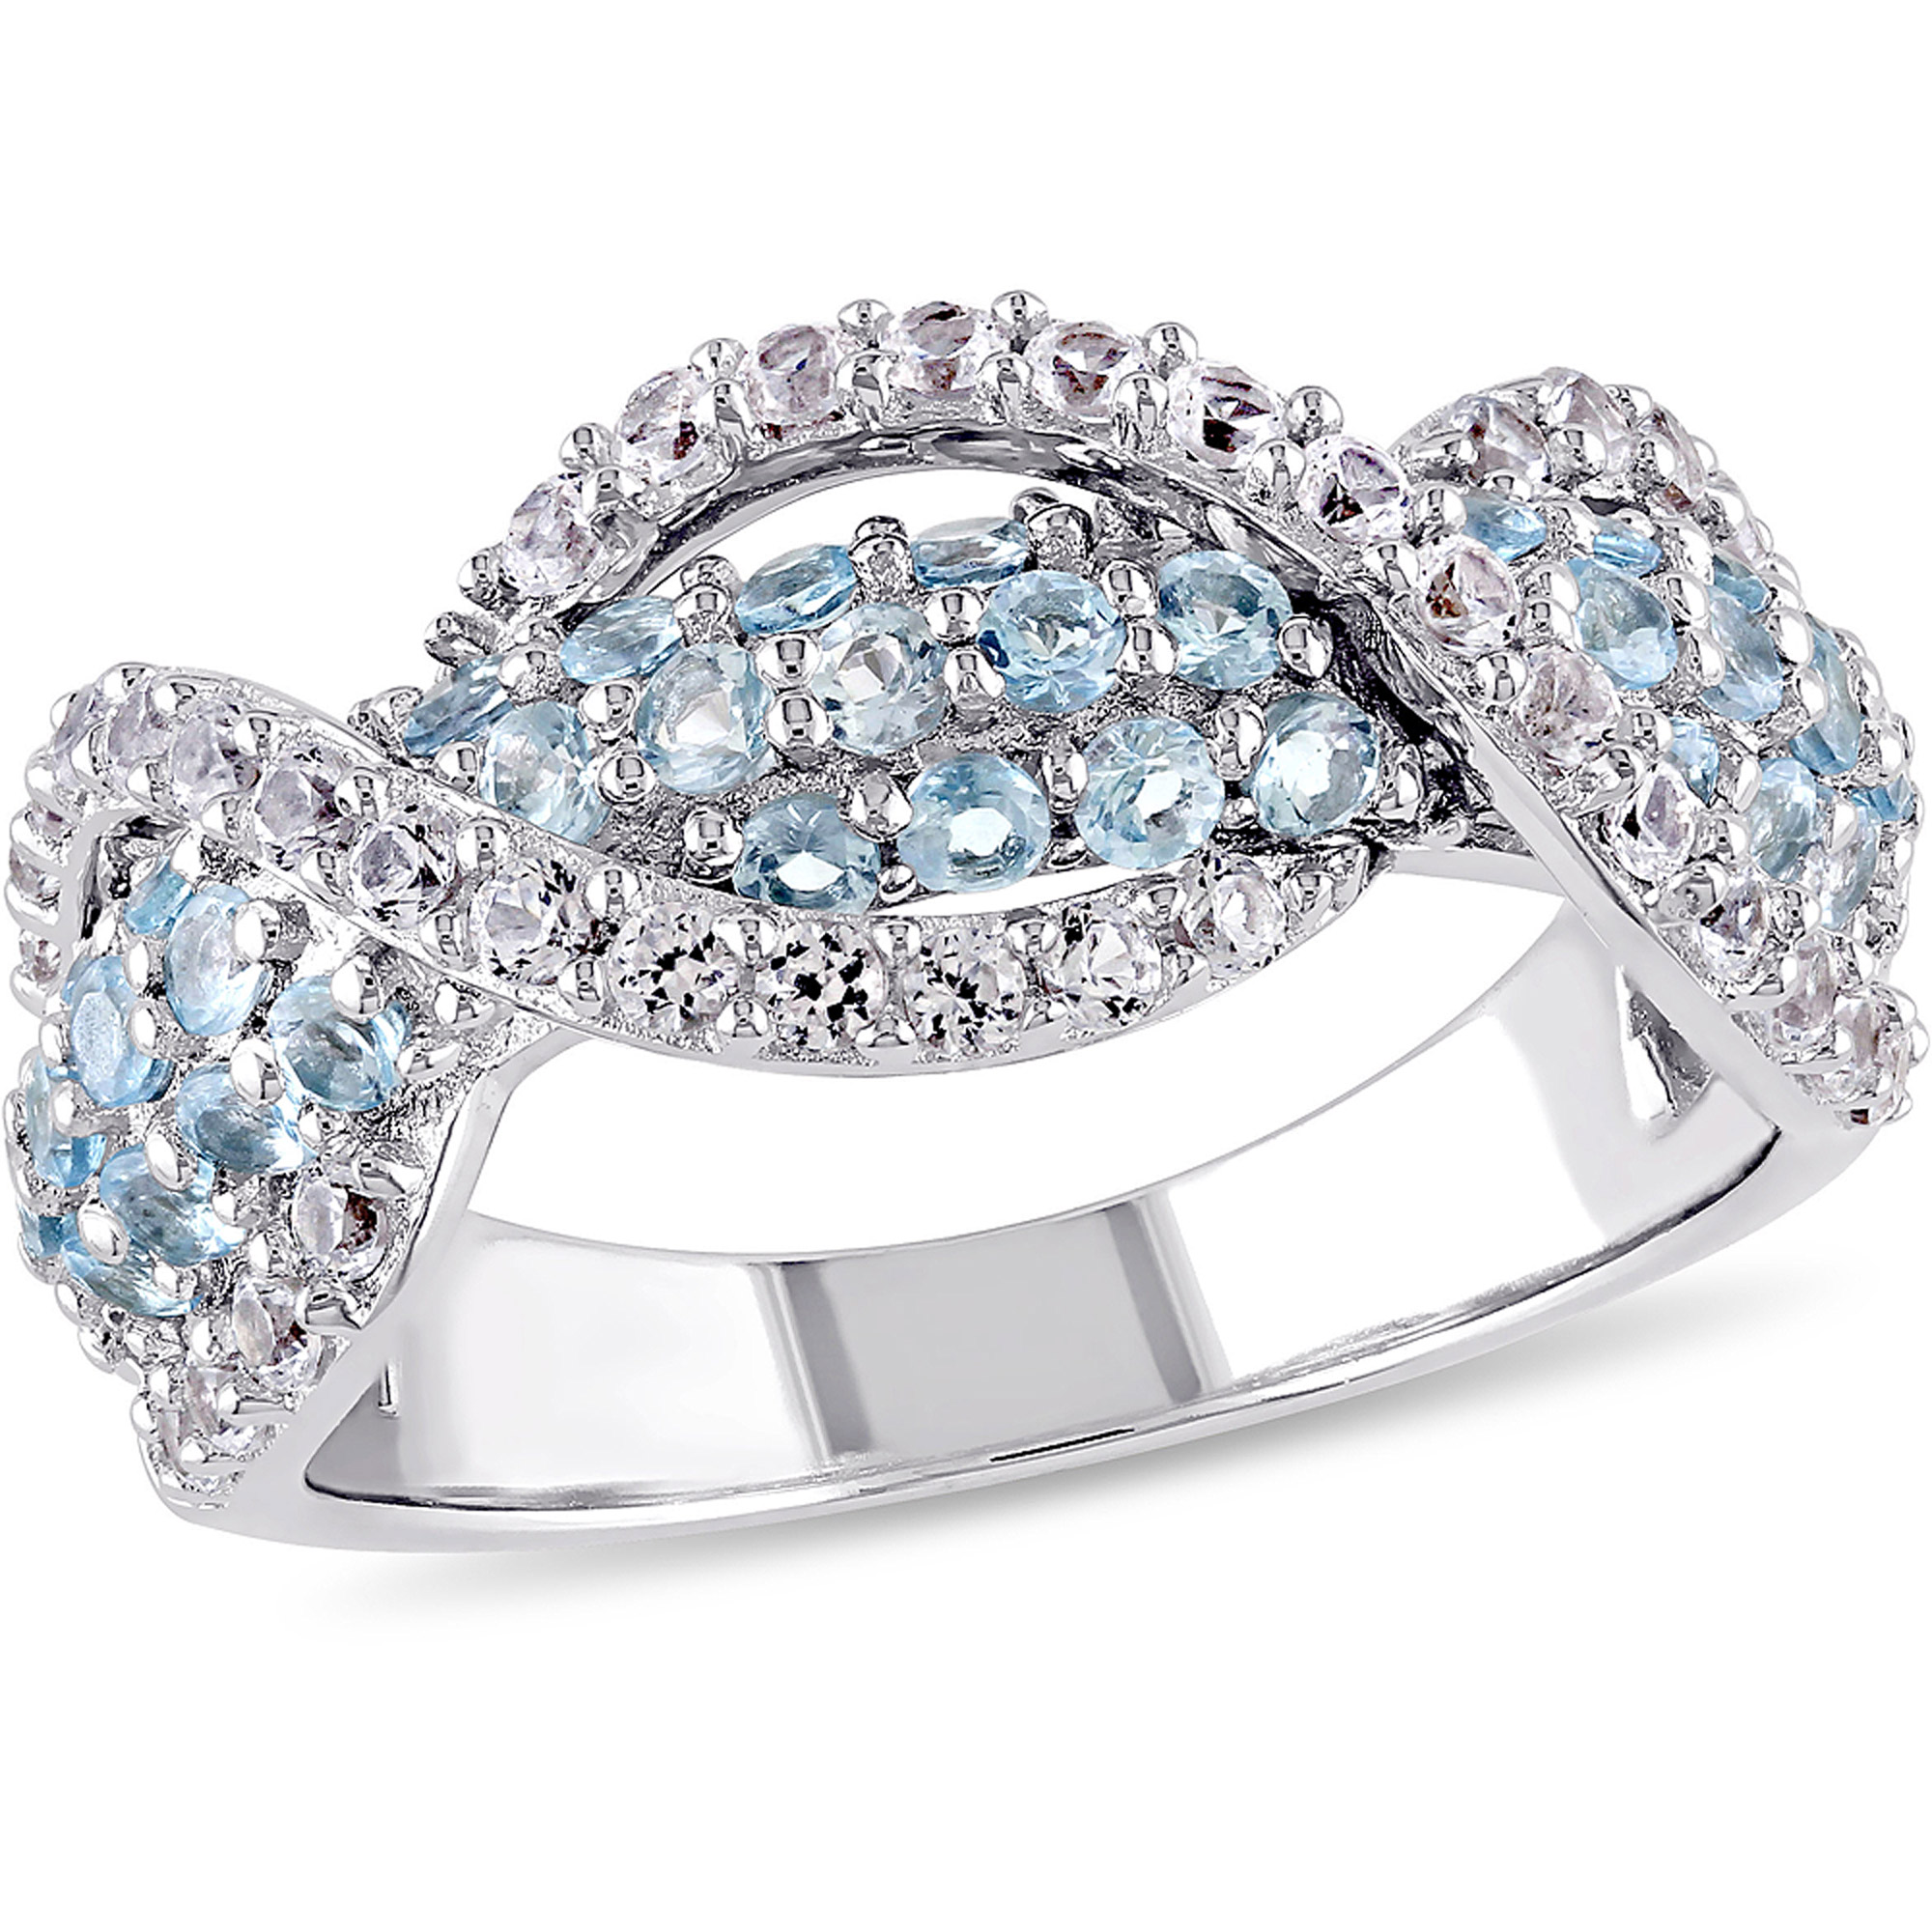 1-3/4 Carat T.G.W. Blue Topaz and Created White Sapphire Sterling Silver Three Row Infinity Ring